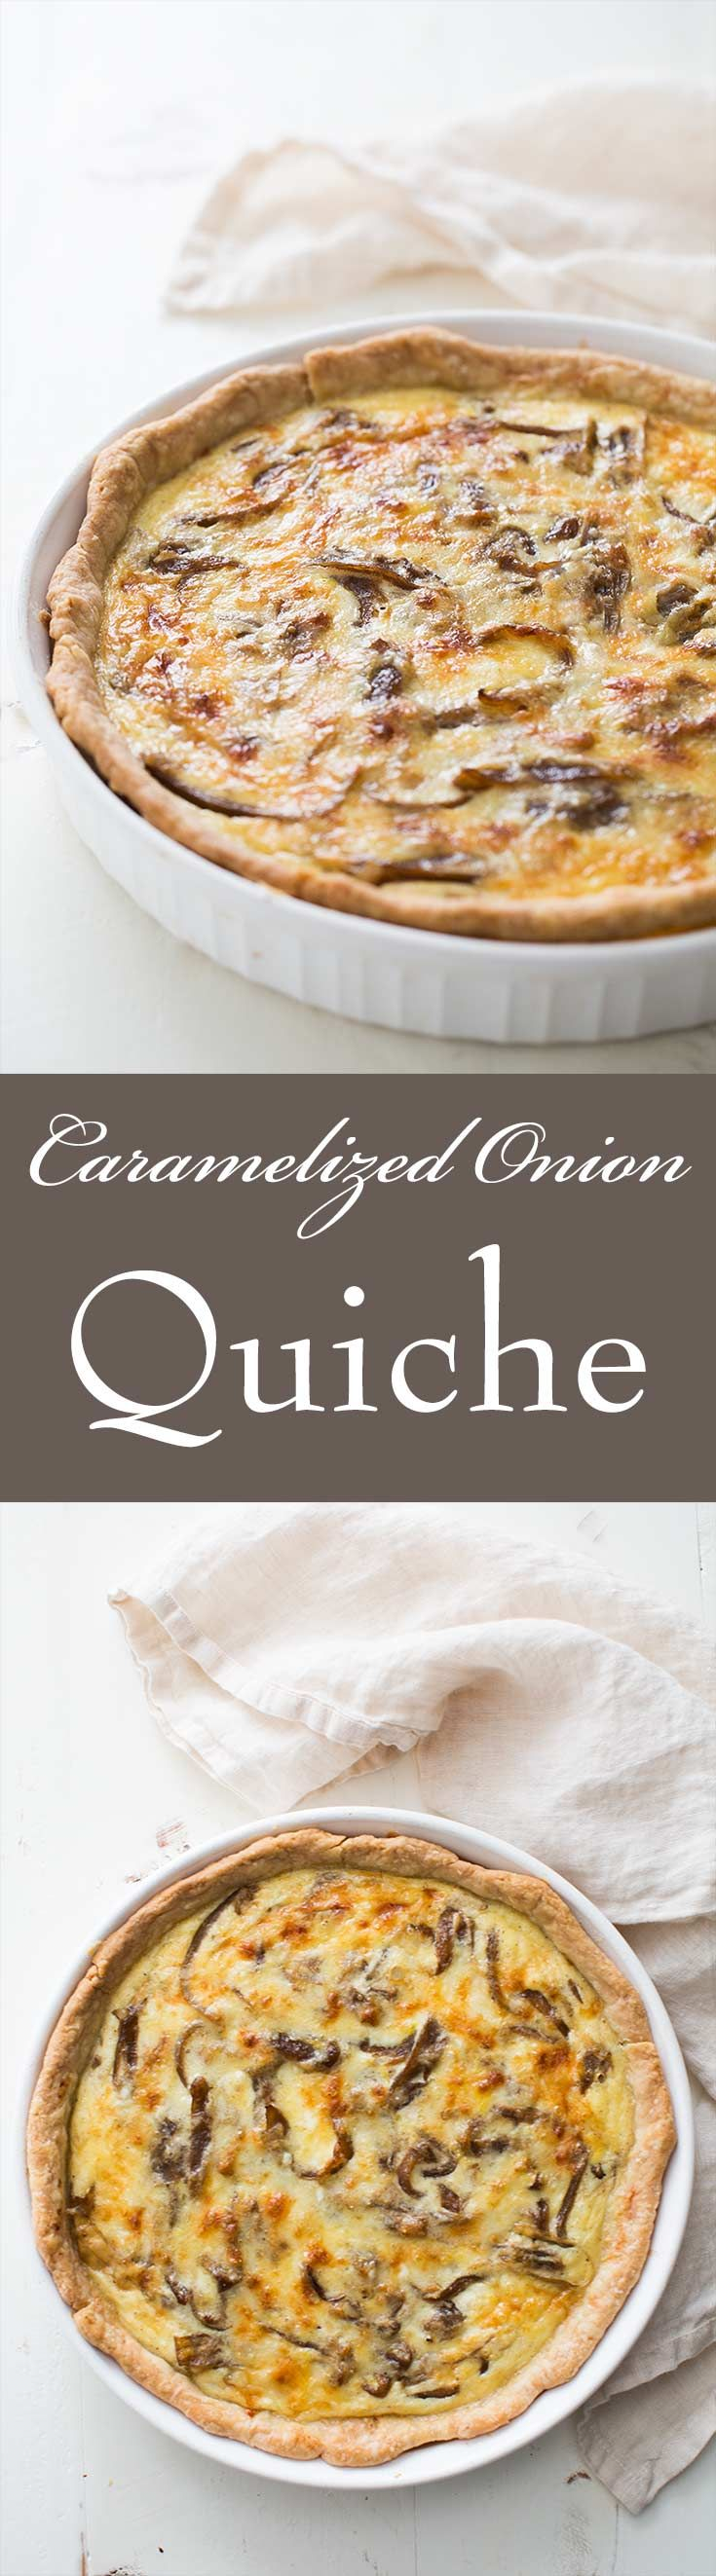 Caramelized Onion Quiche ~ Rich and creamy quiche with caramelized onions and Gruyere cheese. Perfect for Mother's Day or Easter holiday celebrations!